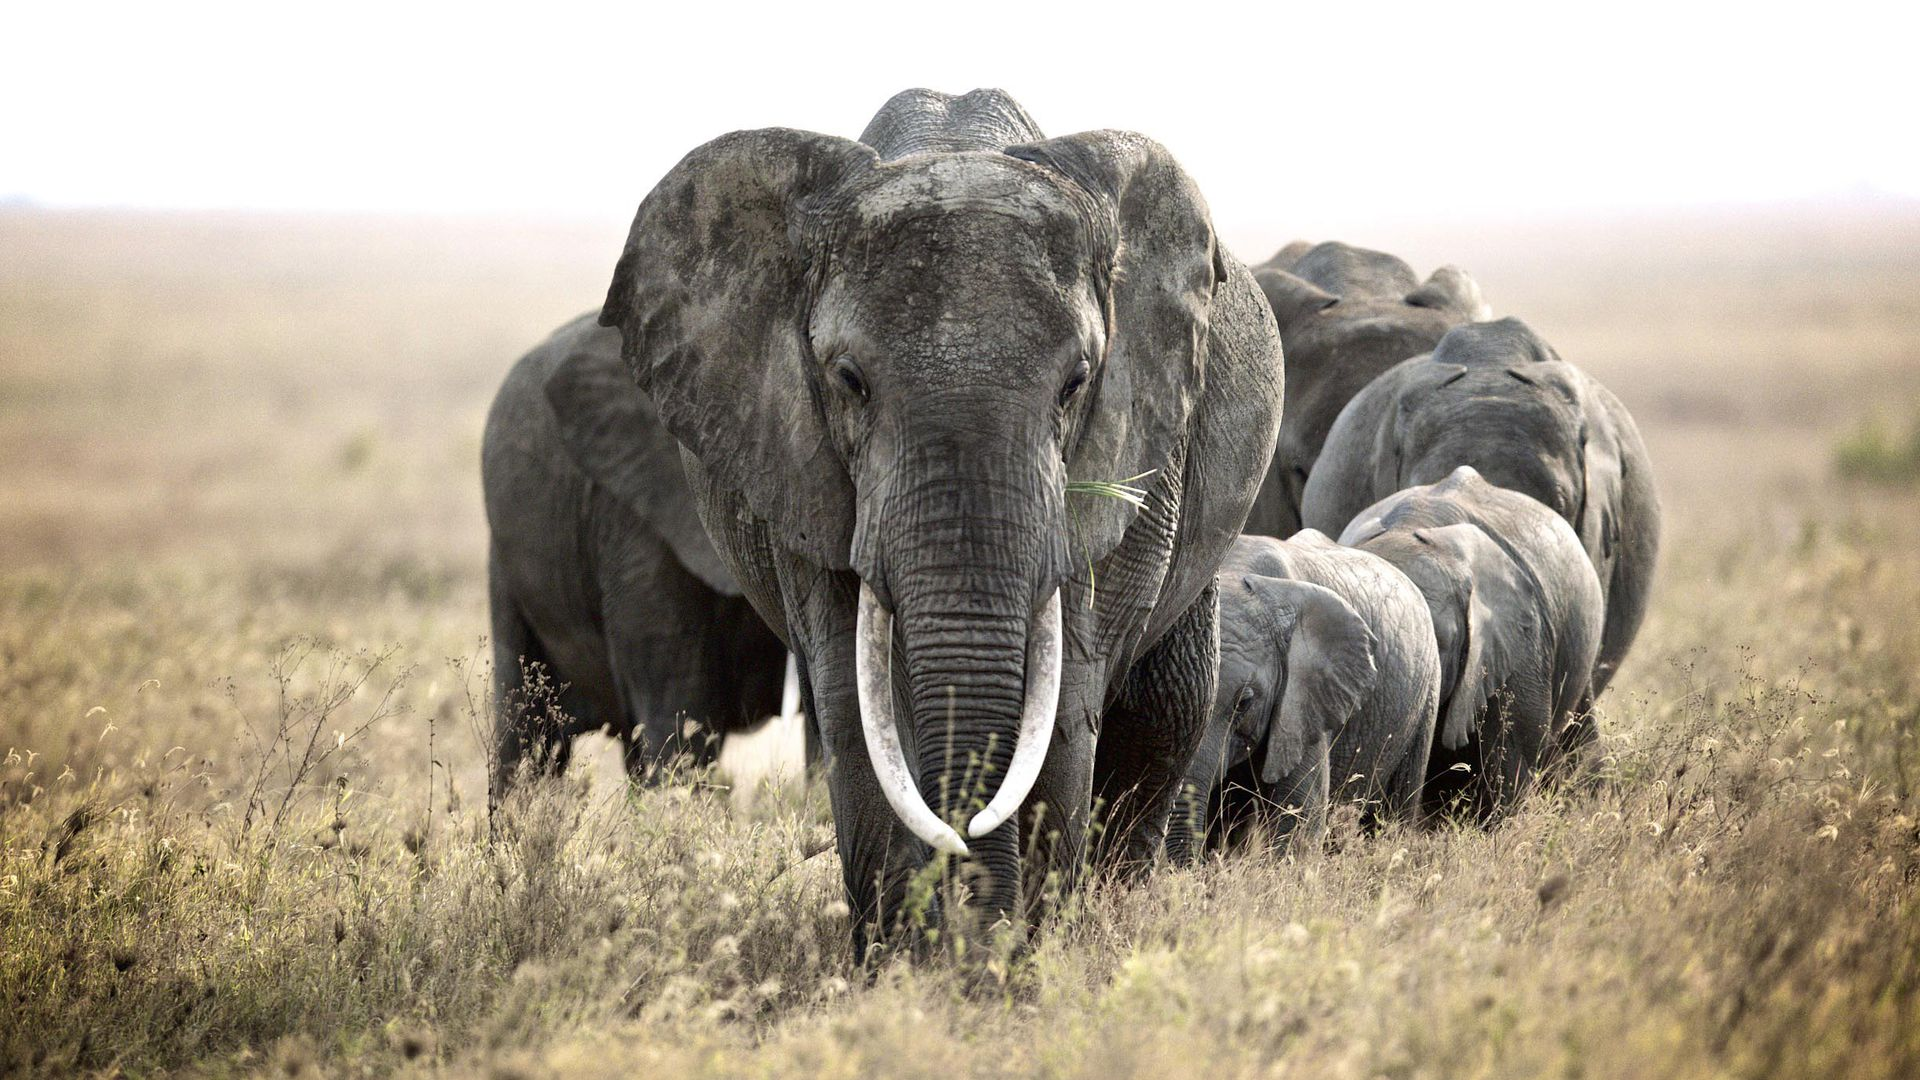 Trump admin. to consider elephant trophy imports on 'case-by-case ...